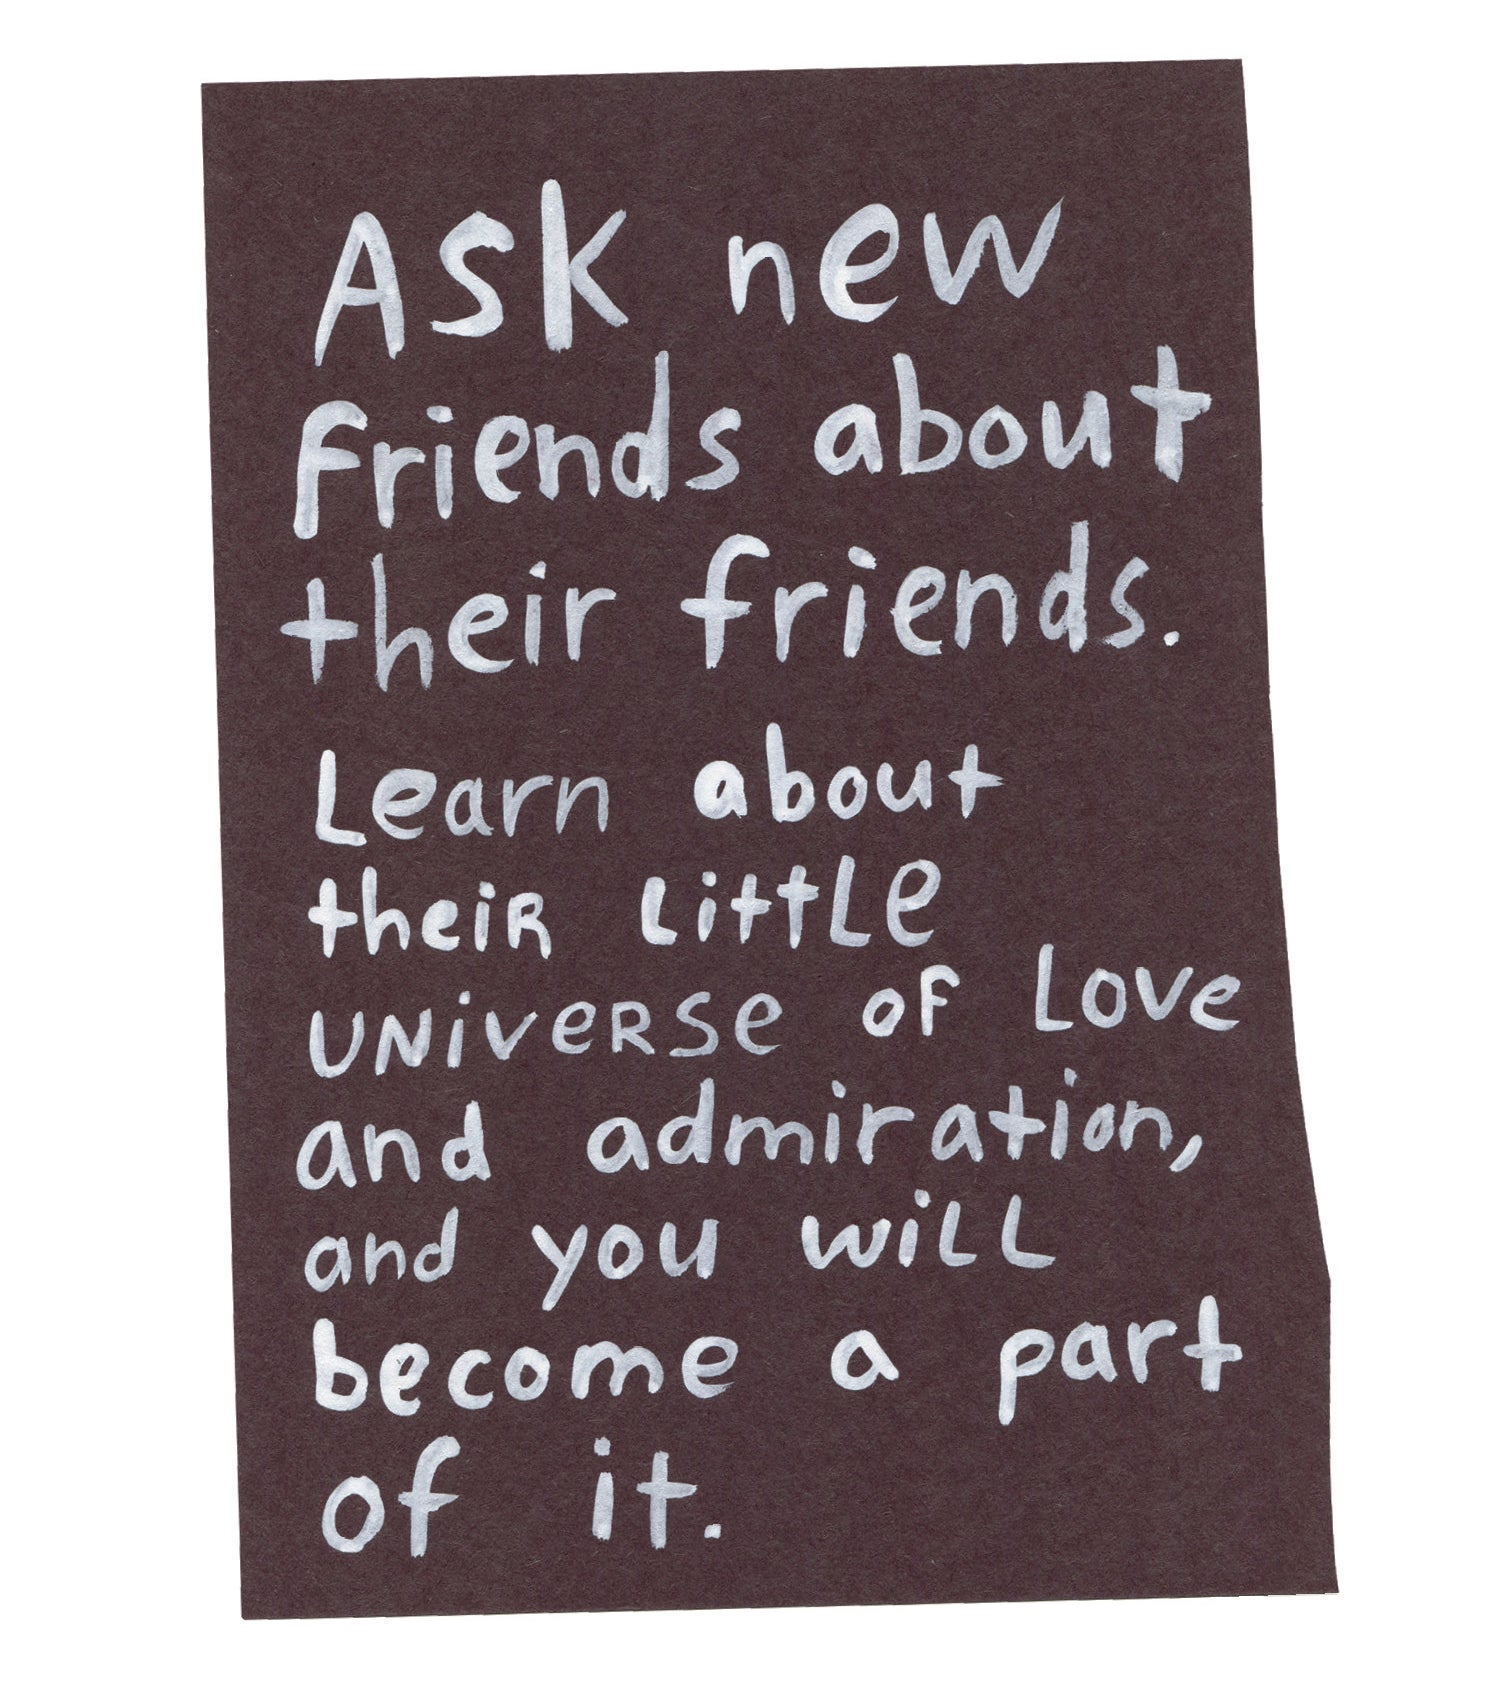 """Handwritten text on torn piece of colored paper: """"Ask new friends about their friends. Learn about their little universe of love and admiration, and you will become a part of it."""""""